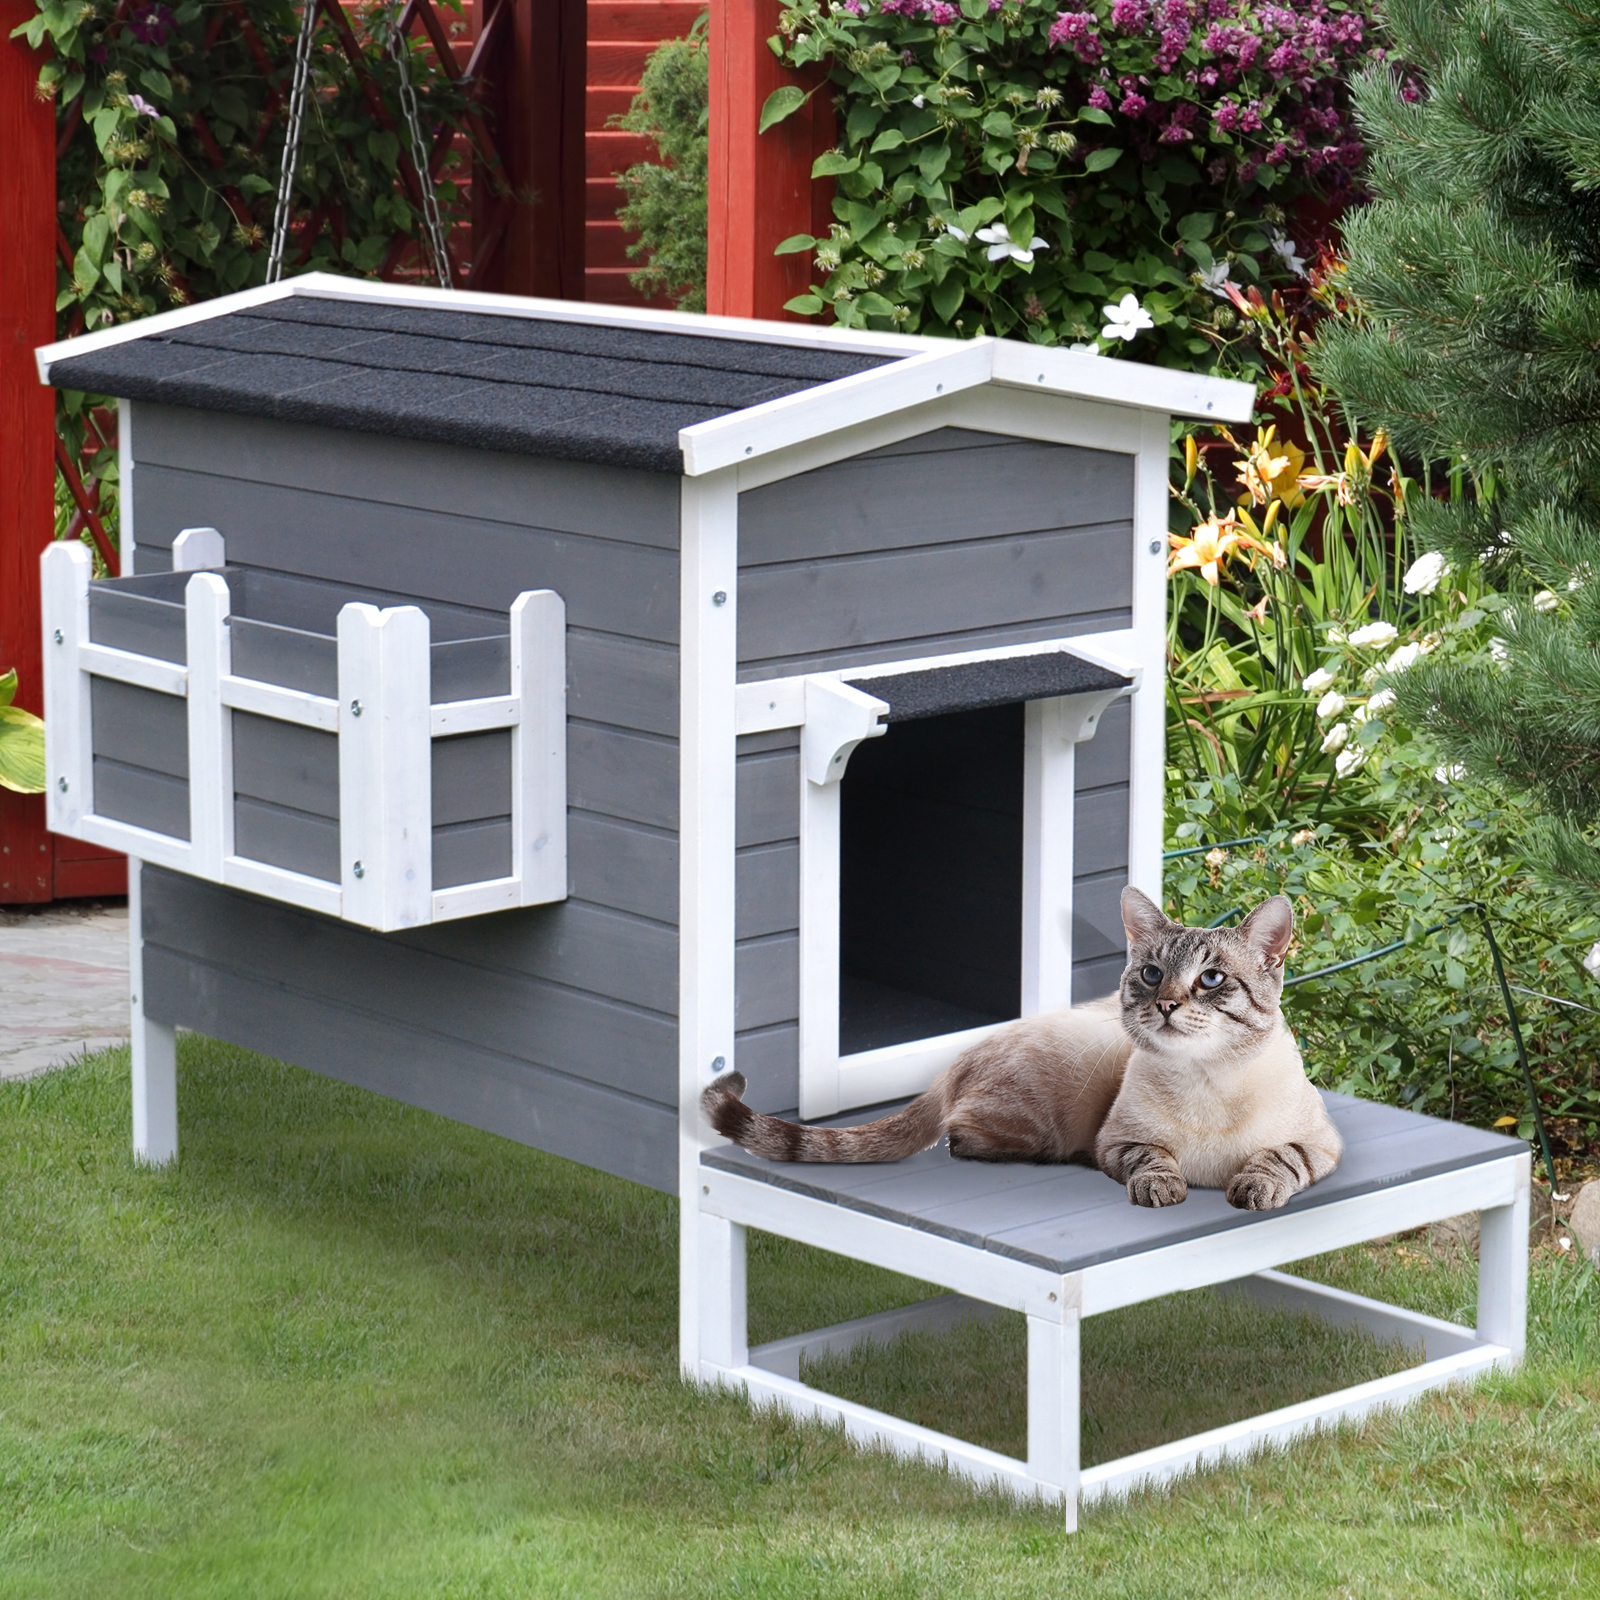 Wood Luxury Raised Outdoor Indoor Dog Cage Cat House With Balcony Grey 842525131209 Ebay